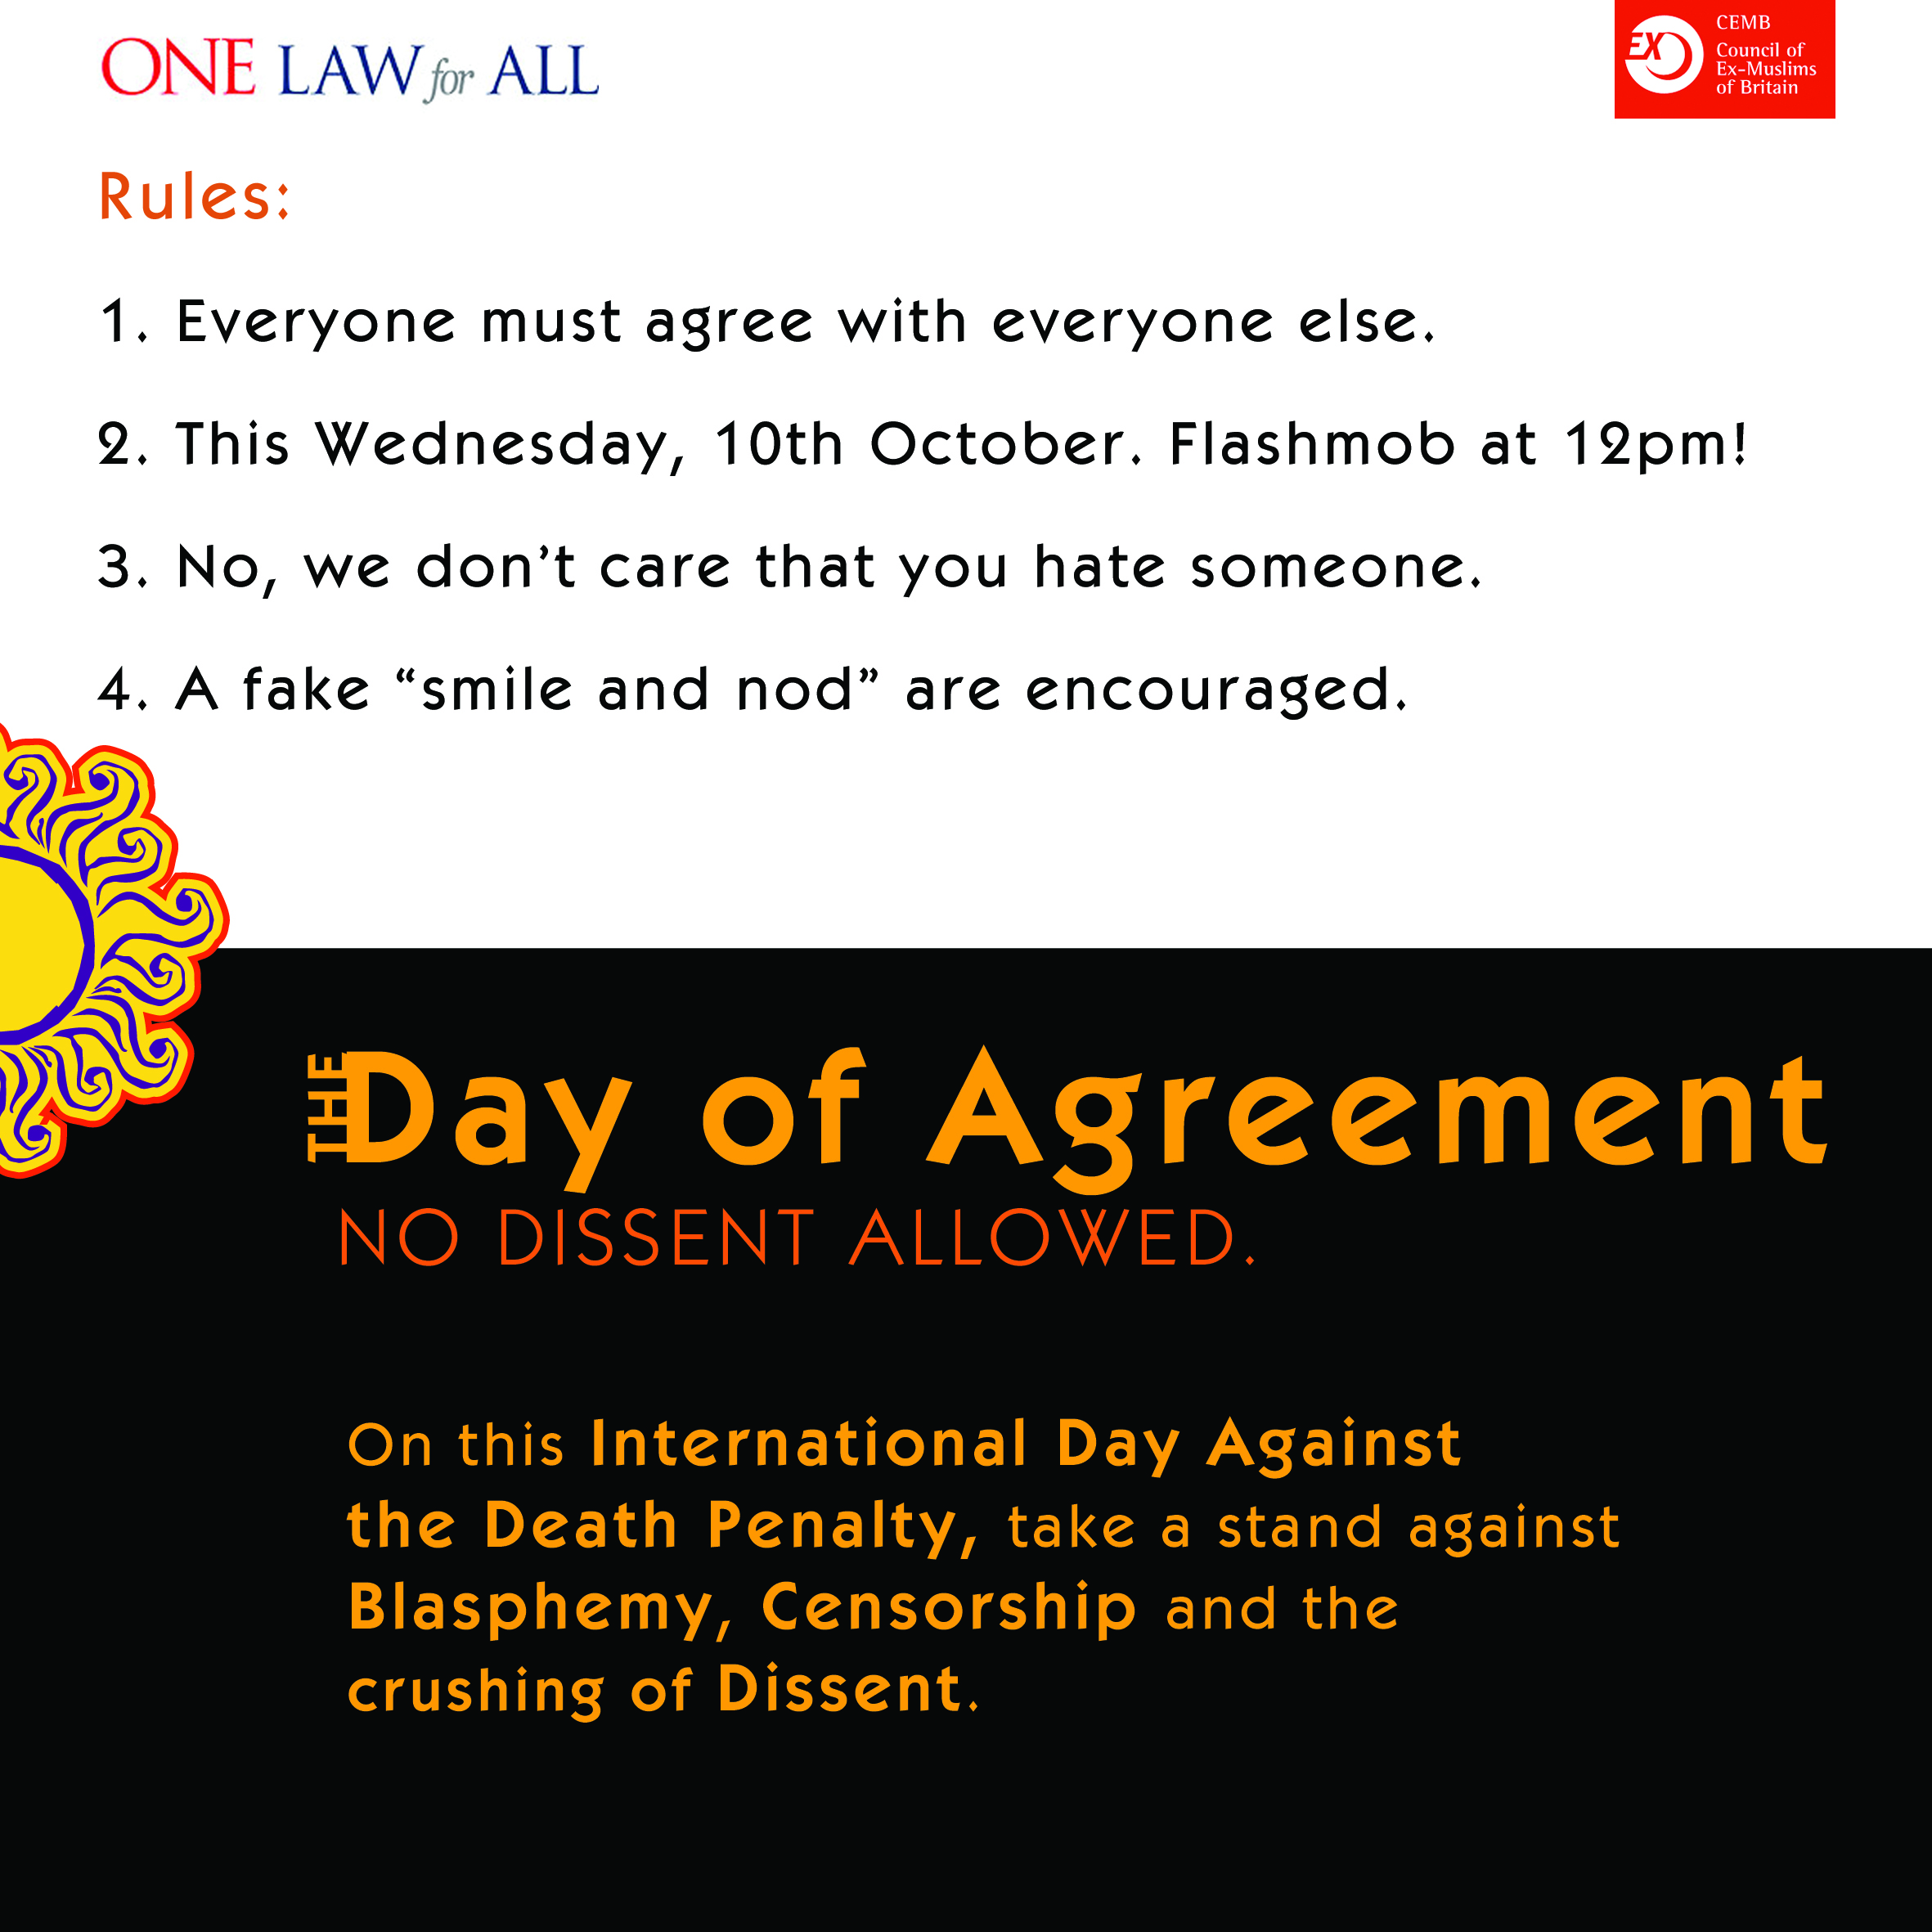 10 October 2012: Day of Agreement